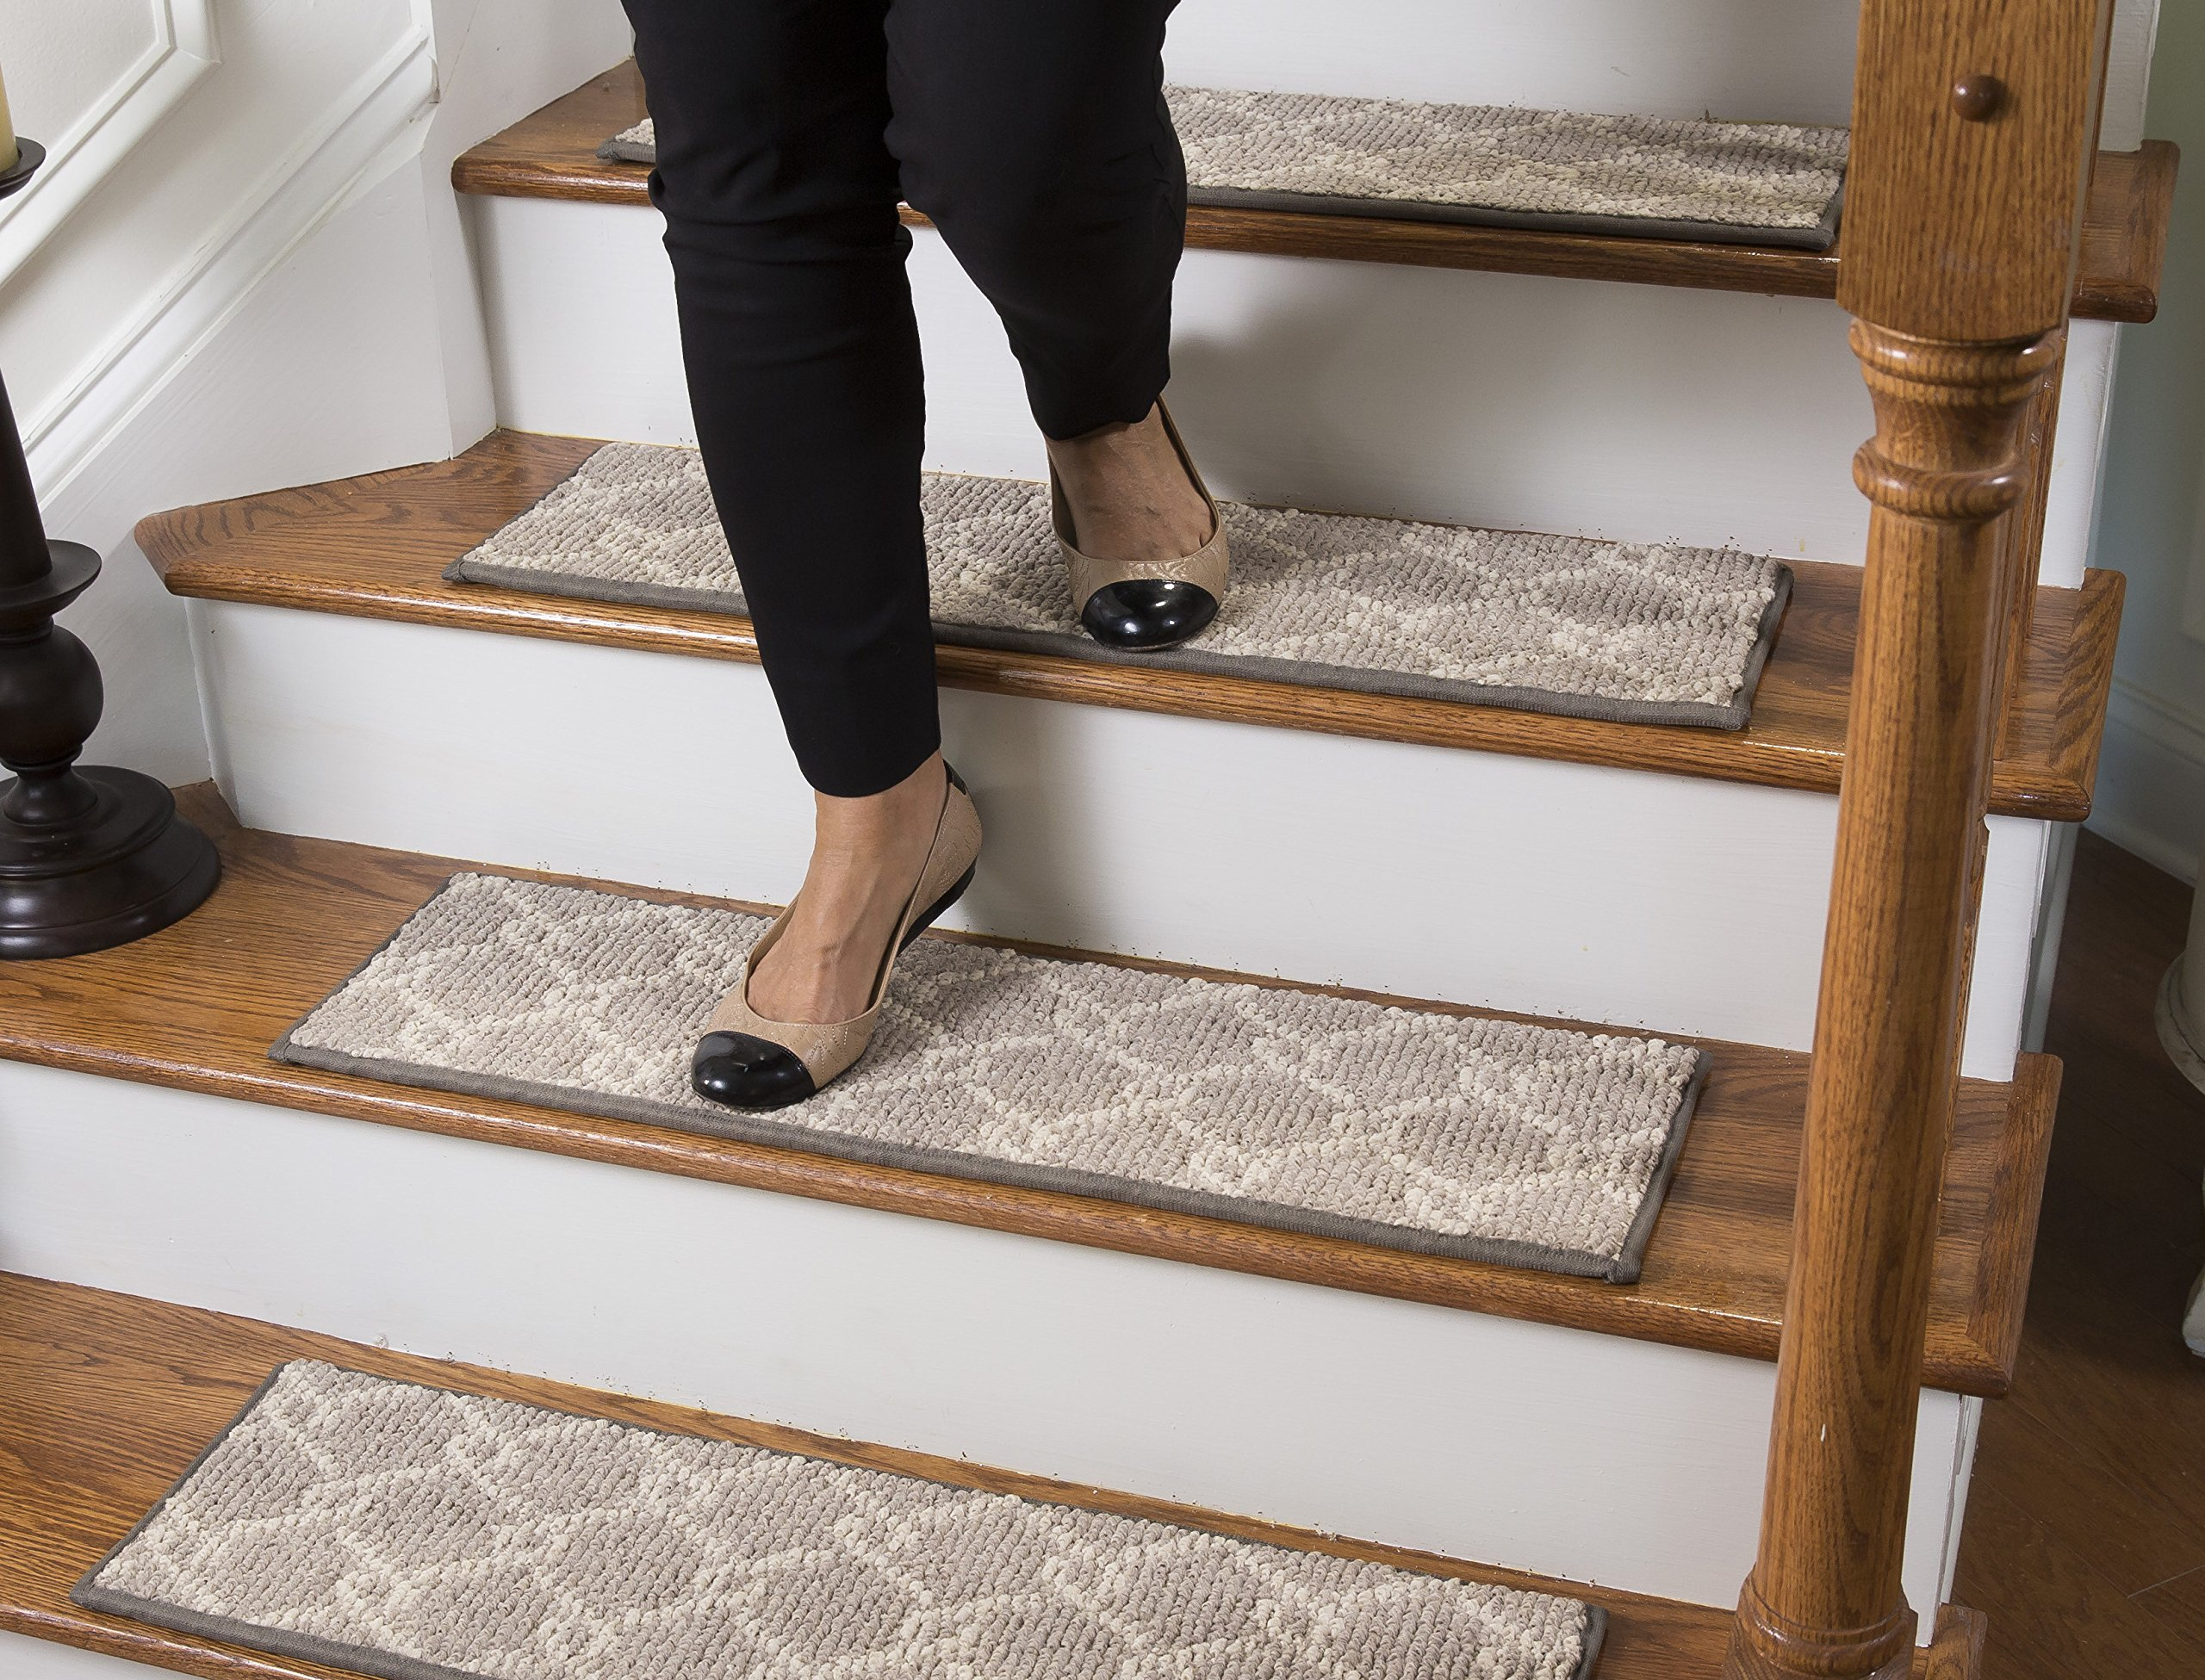 Tread Comfort Traditional Carpet Stair Treads, with Adhesive Padding (13, Parterre)